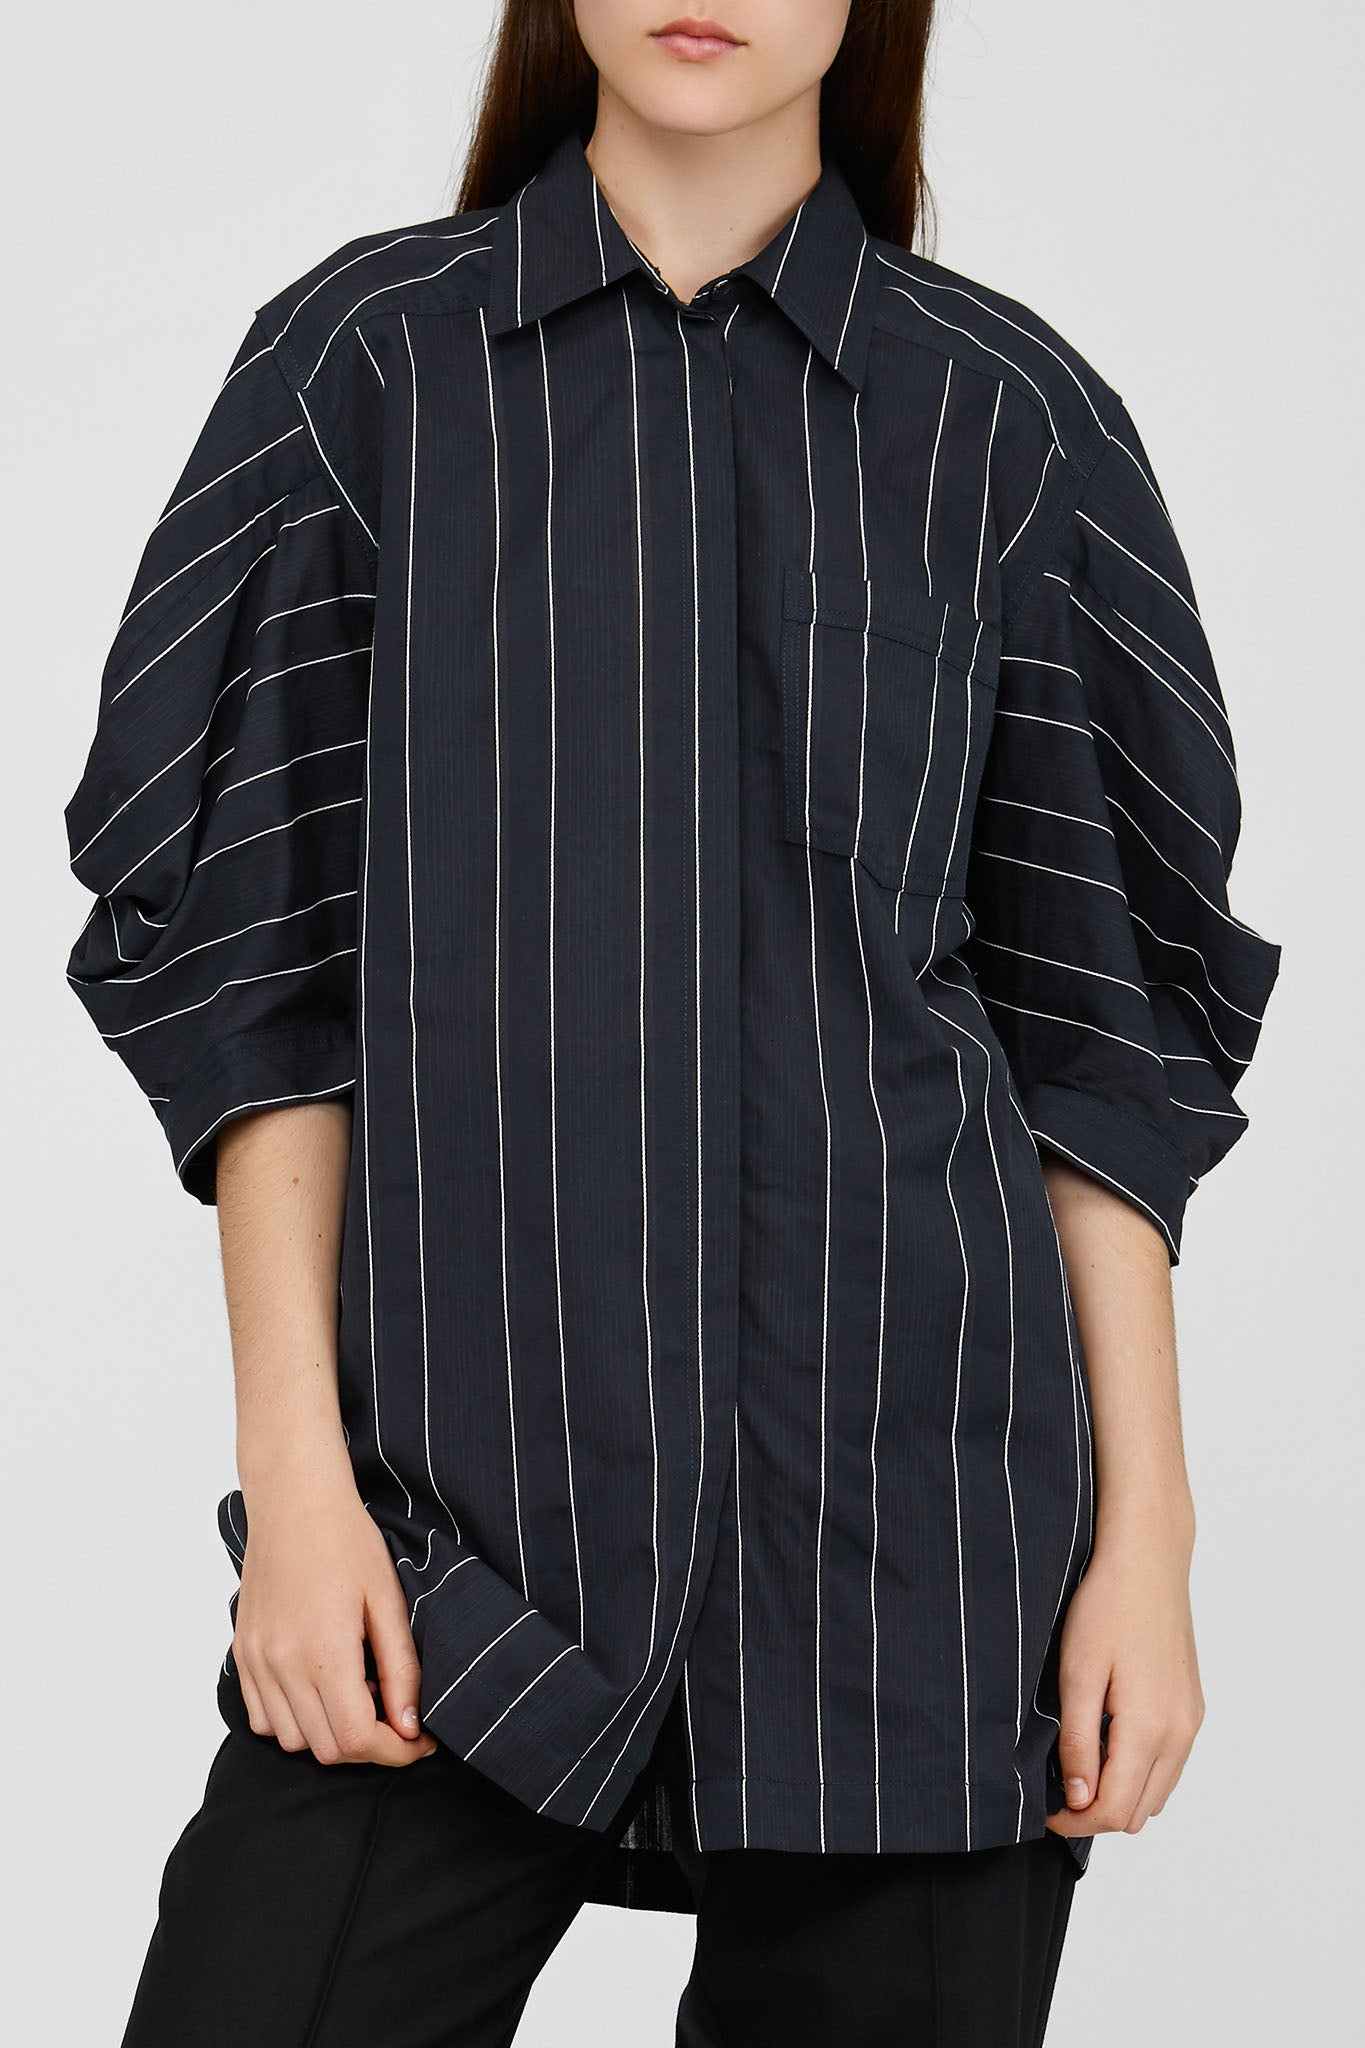 Black Acler Striped Knightley Shirt